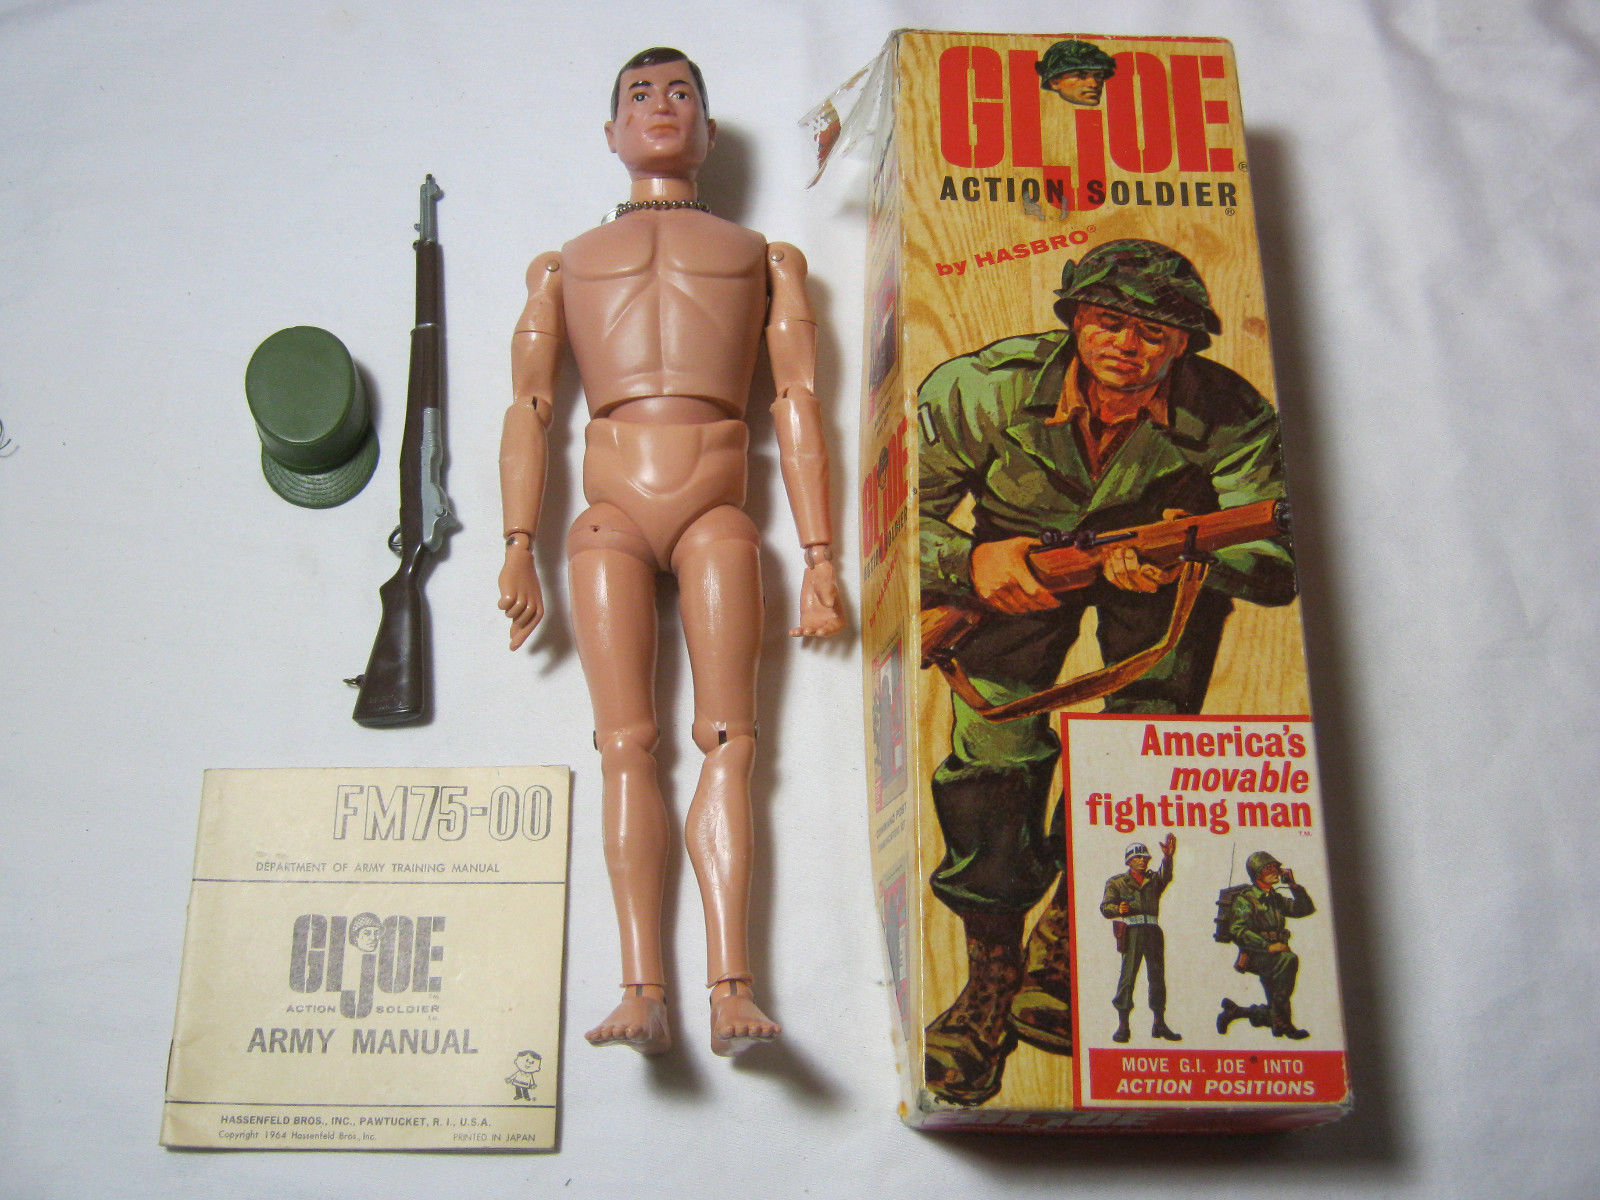 VINTAGE G.I. JOE ACTION SOLDIER BY HASBRO   T